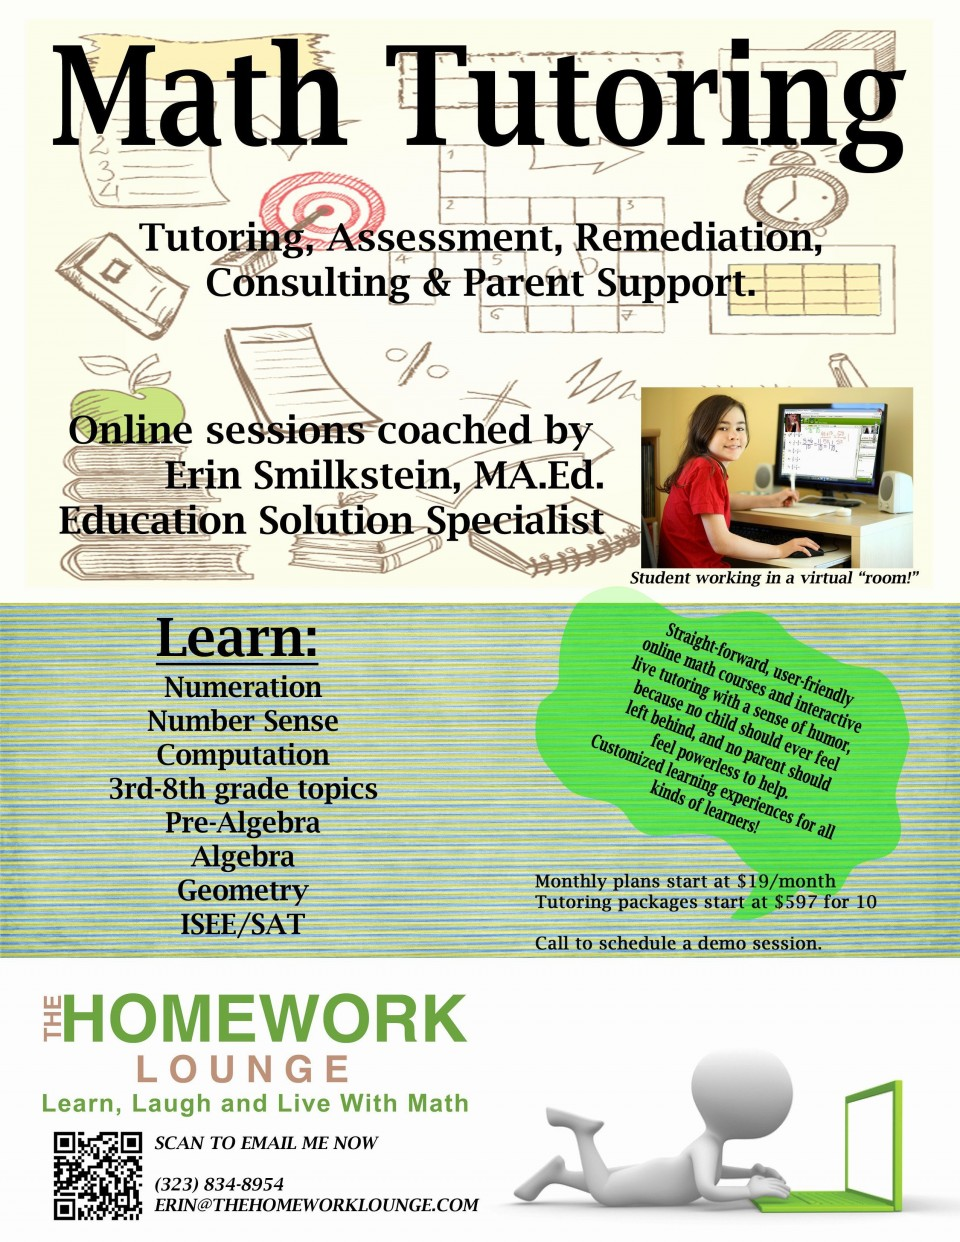 001 Wondrou Tutoring Flyer Template Free Photo  Word960